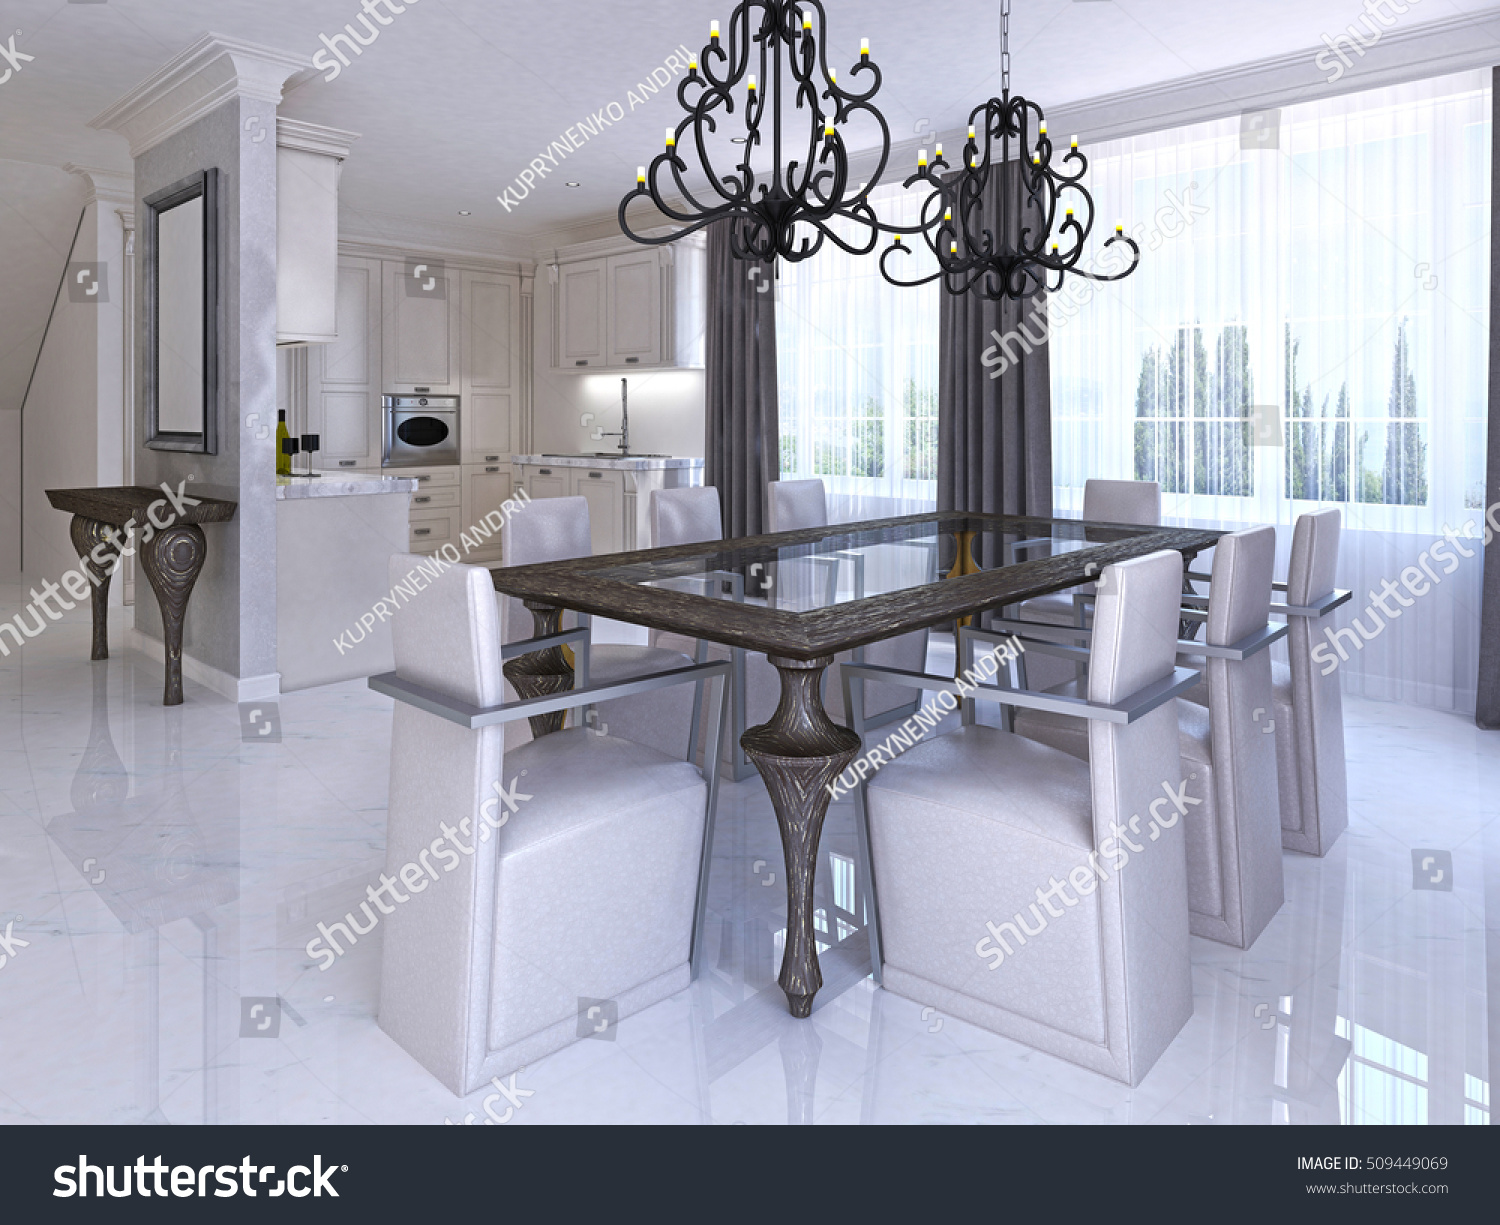 Luxurious Dining Room With Dining Table And Designer Chairs. Wooden Table  And Glass Countertop And